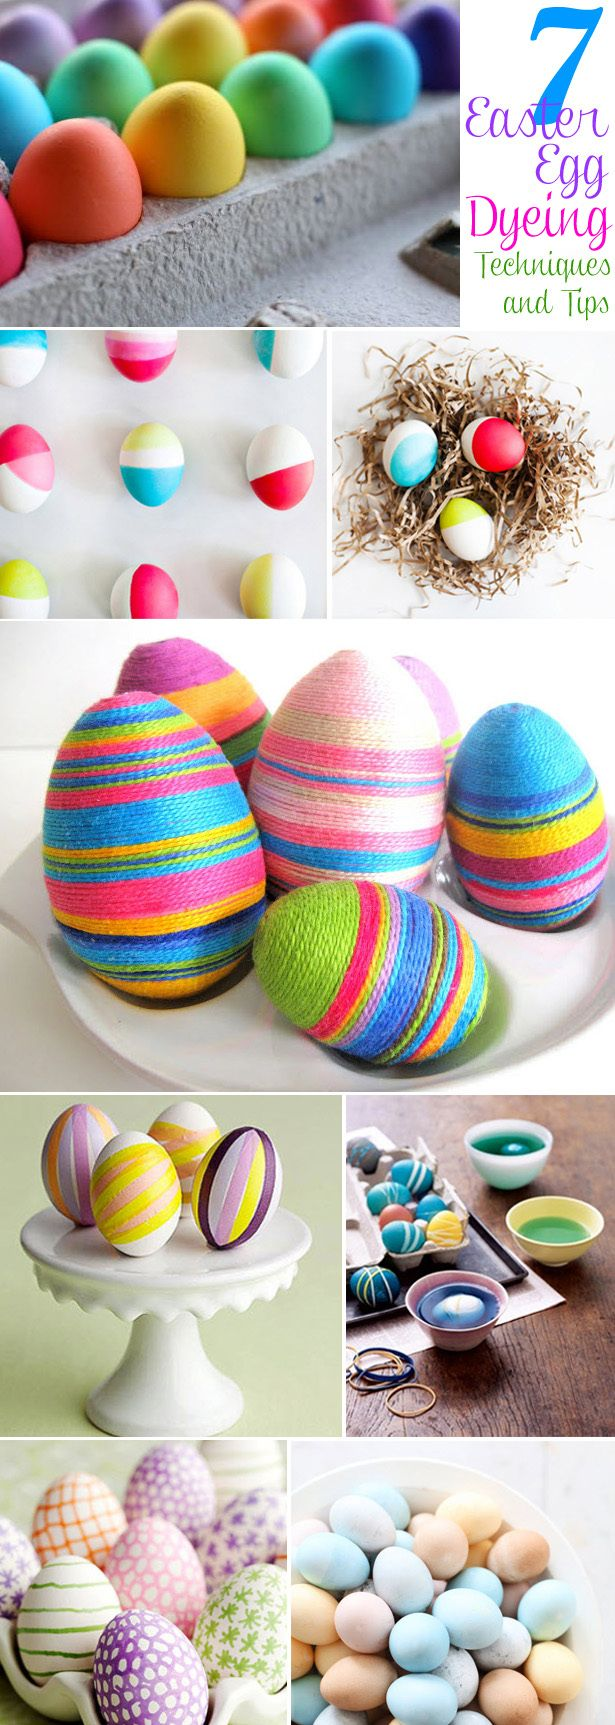 7-Easter-Egg-Dyeing-Techniques-and-Tips